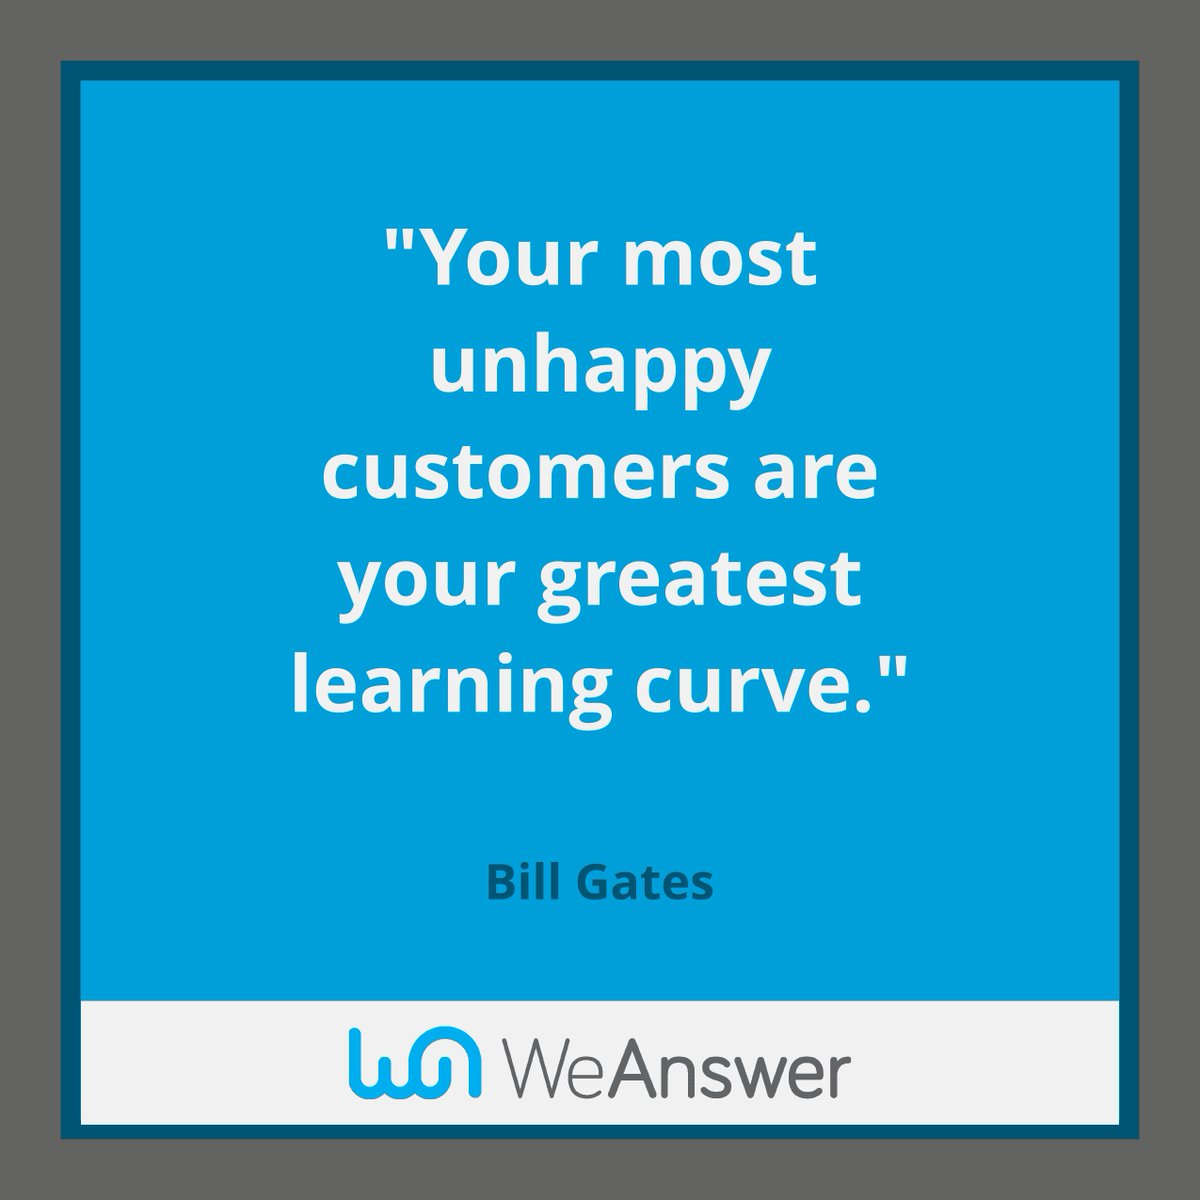 Customer Service Quote Weanswer Weansweruk  Twitter